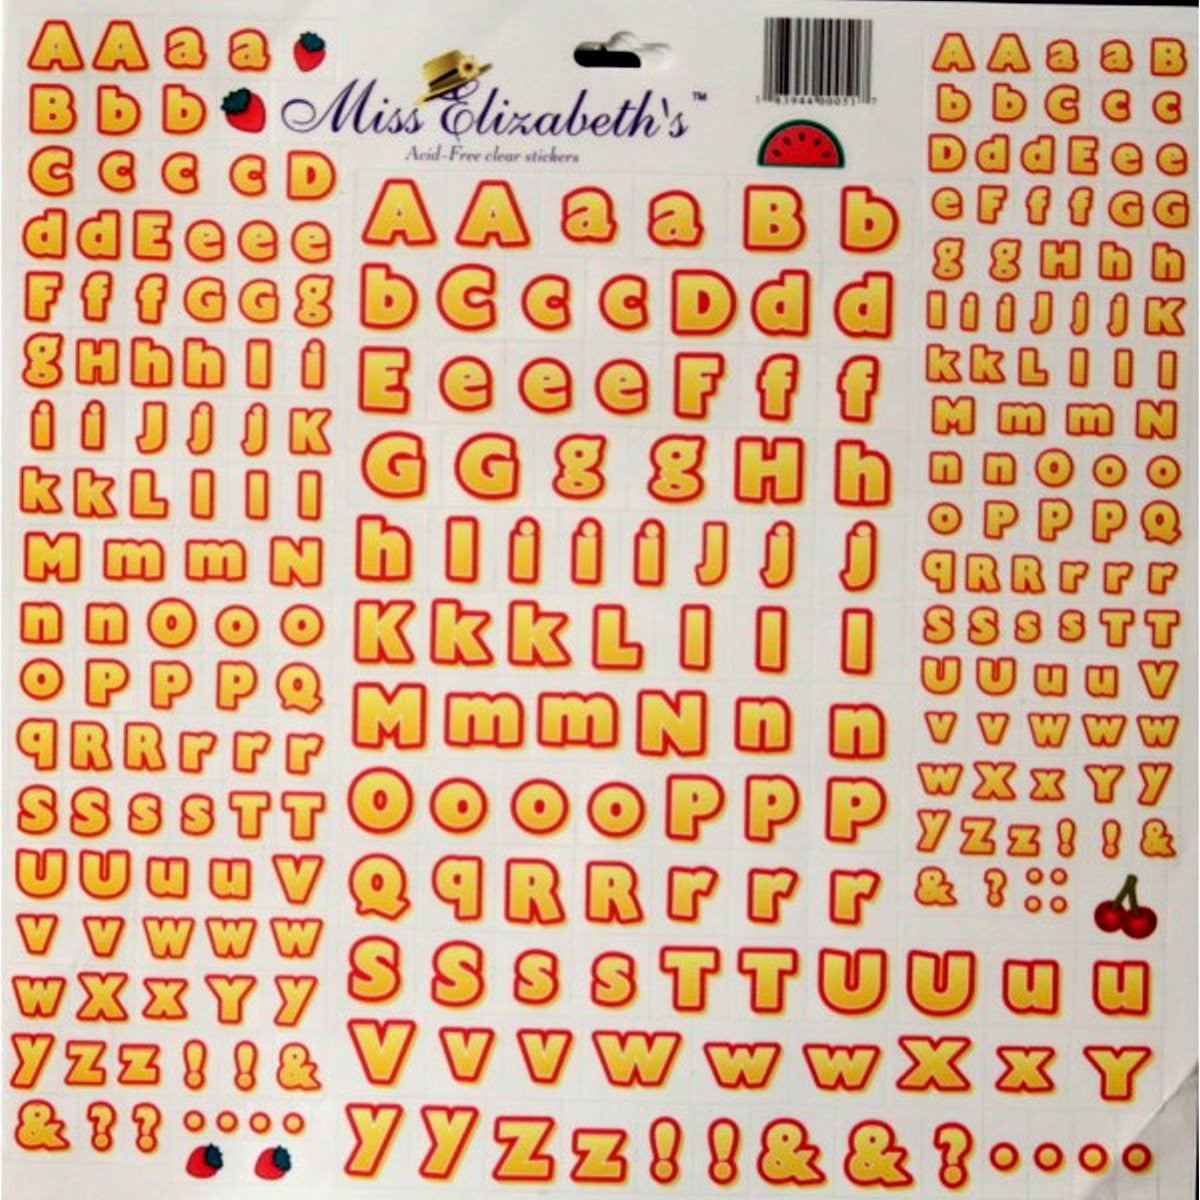 Miss Elizabeth's 12 x 12  Yellow & Red Alphabets Clear Stickers Sheet - SCRAPBOOKFARE